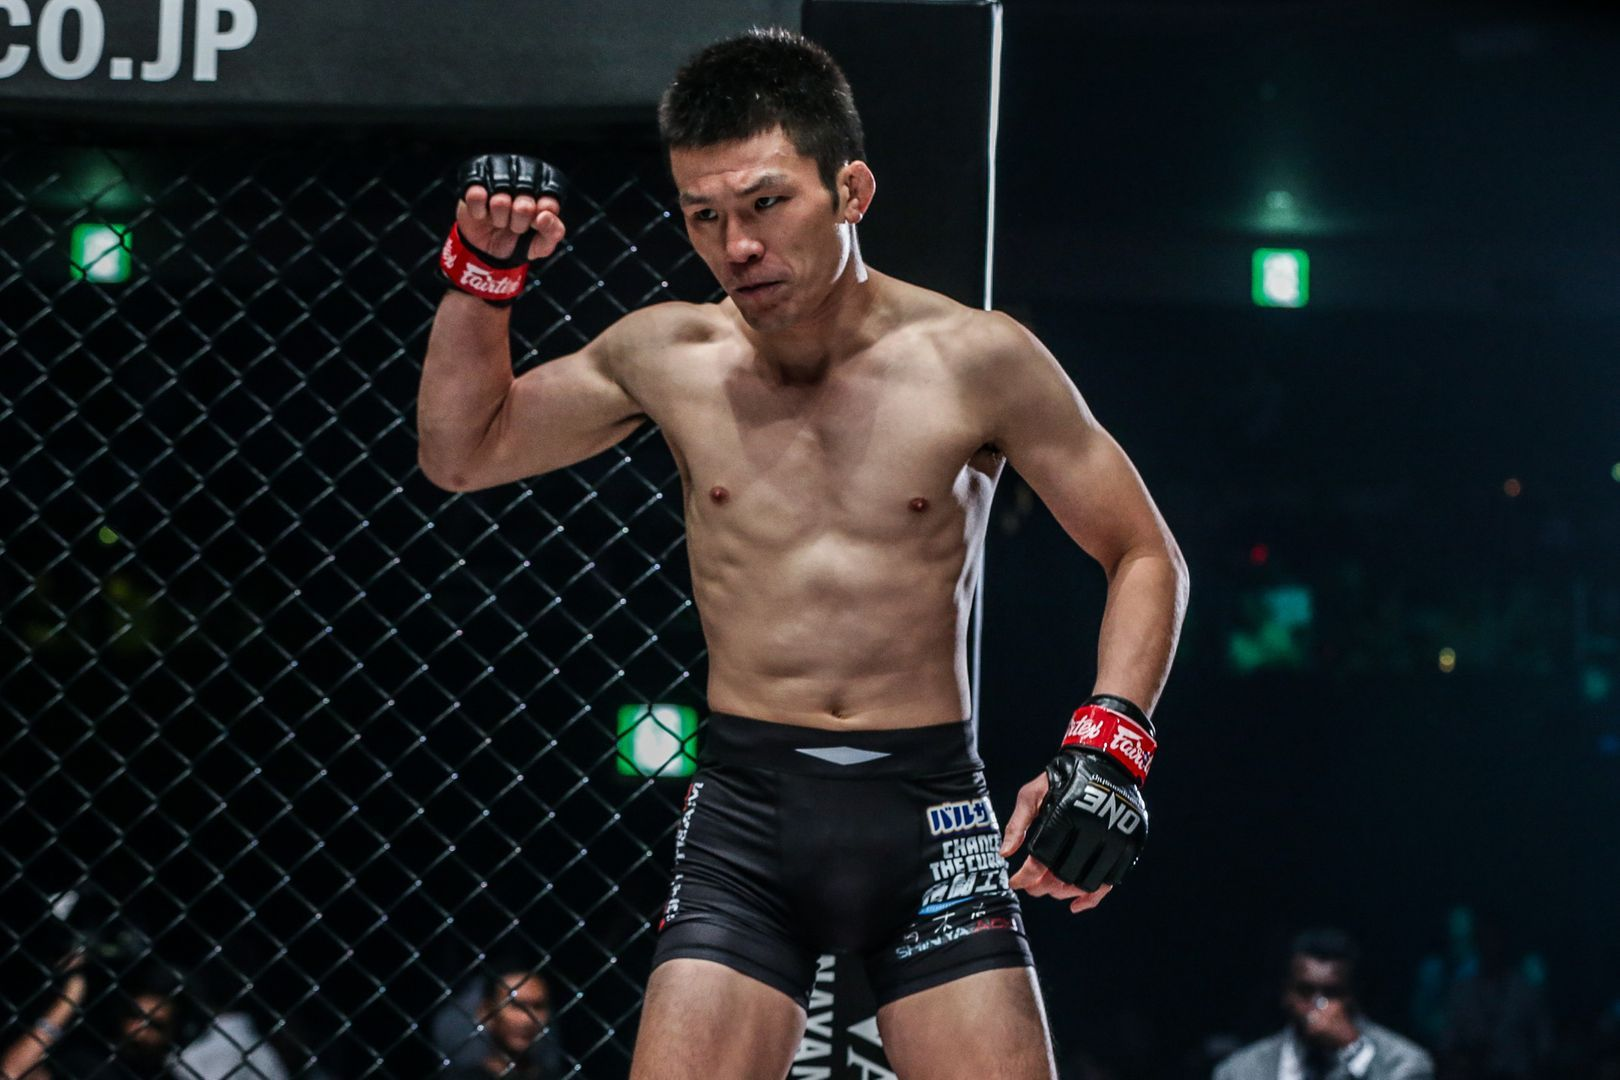 Japanese martial arts icon Shinya Aoki celebrates his victory in Tokyo, Japan